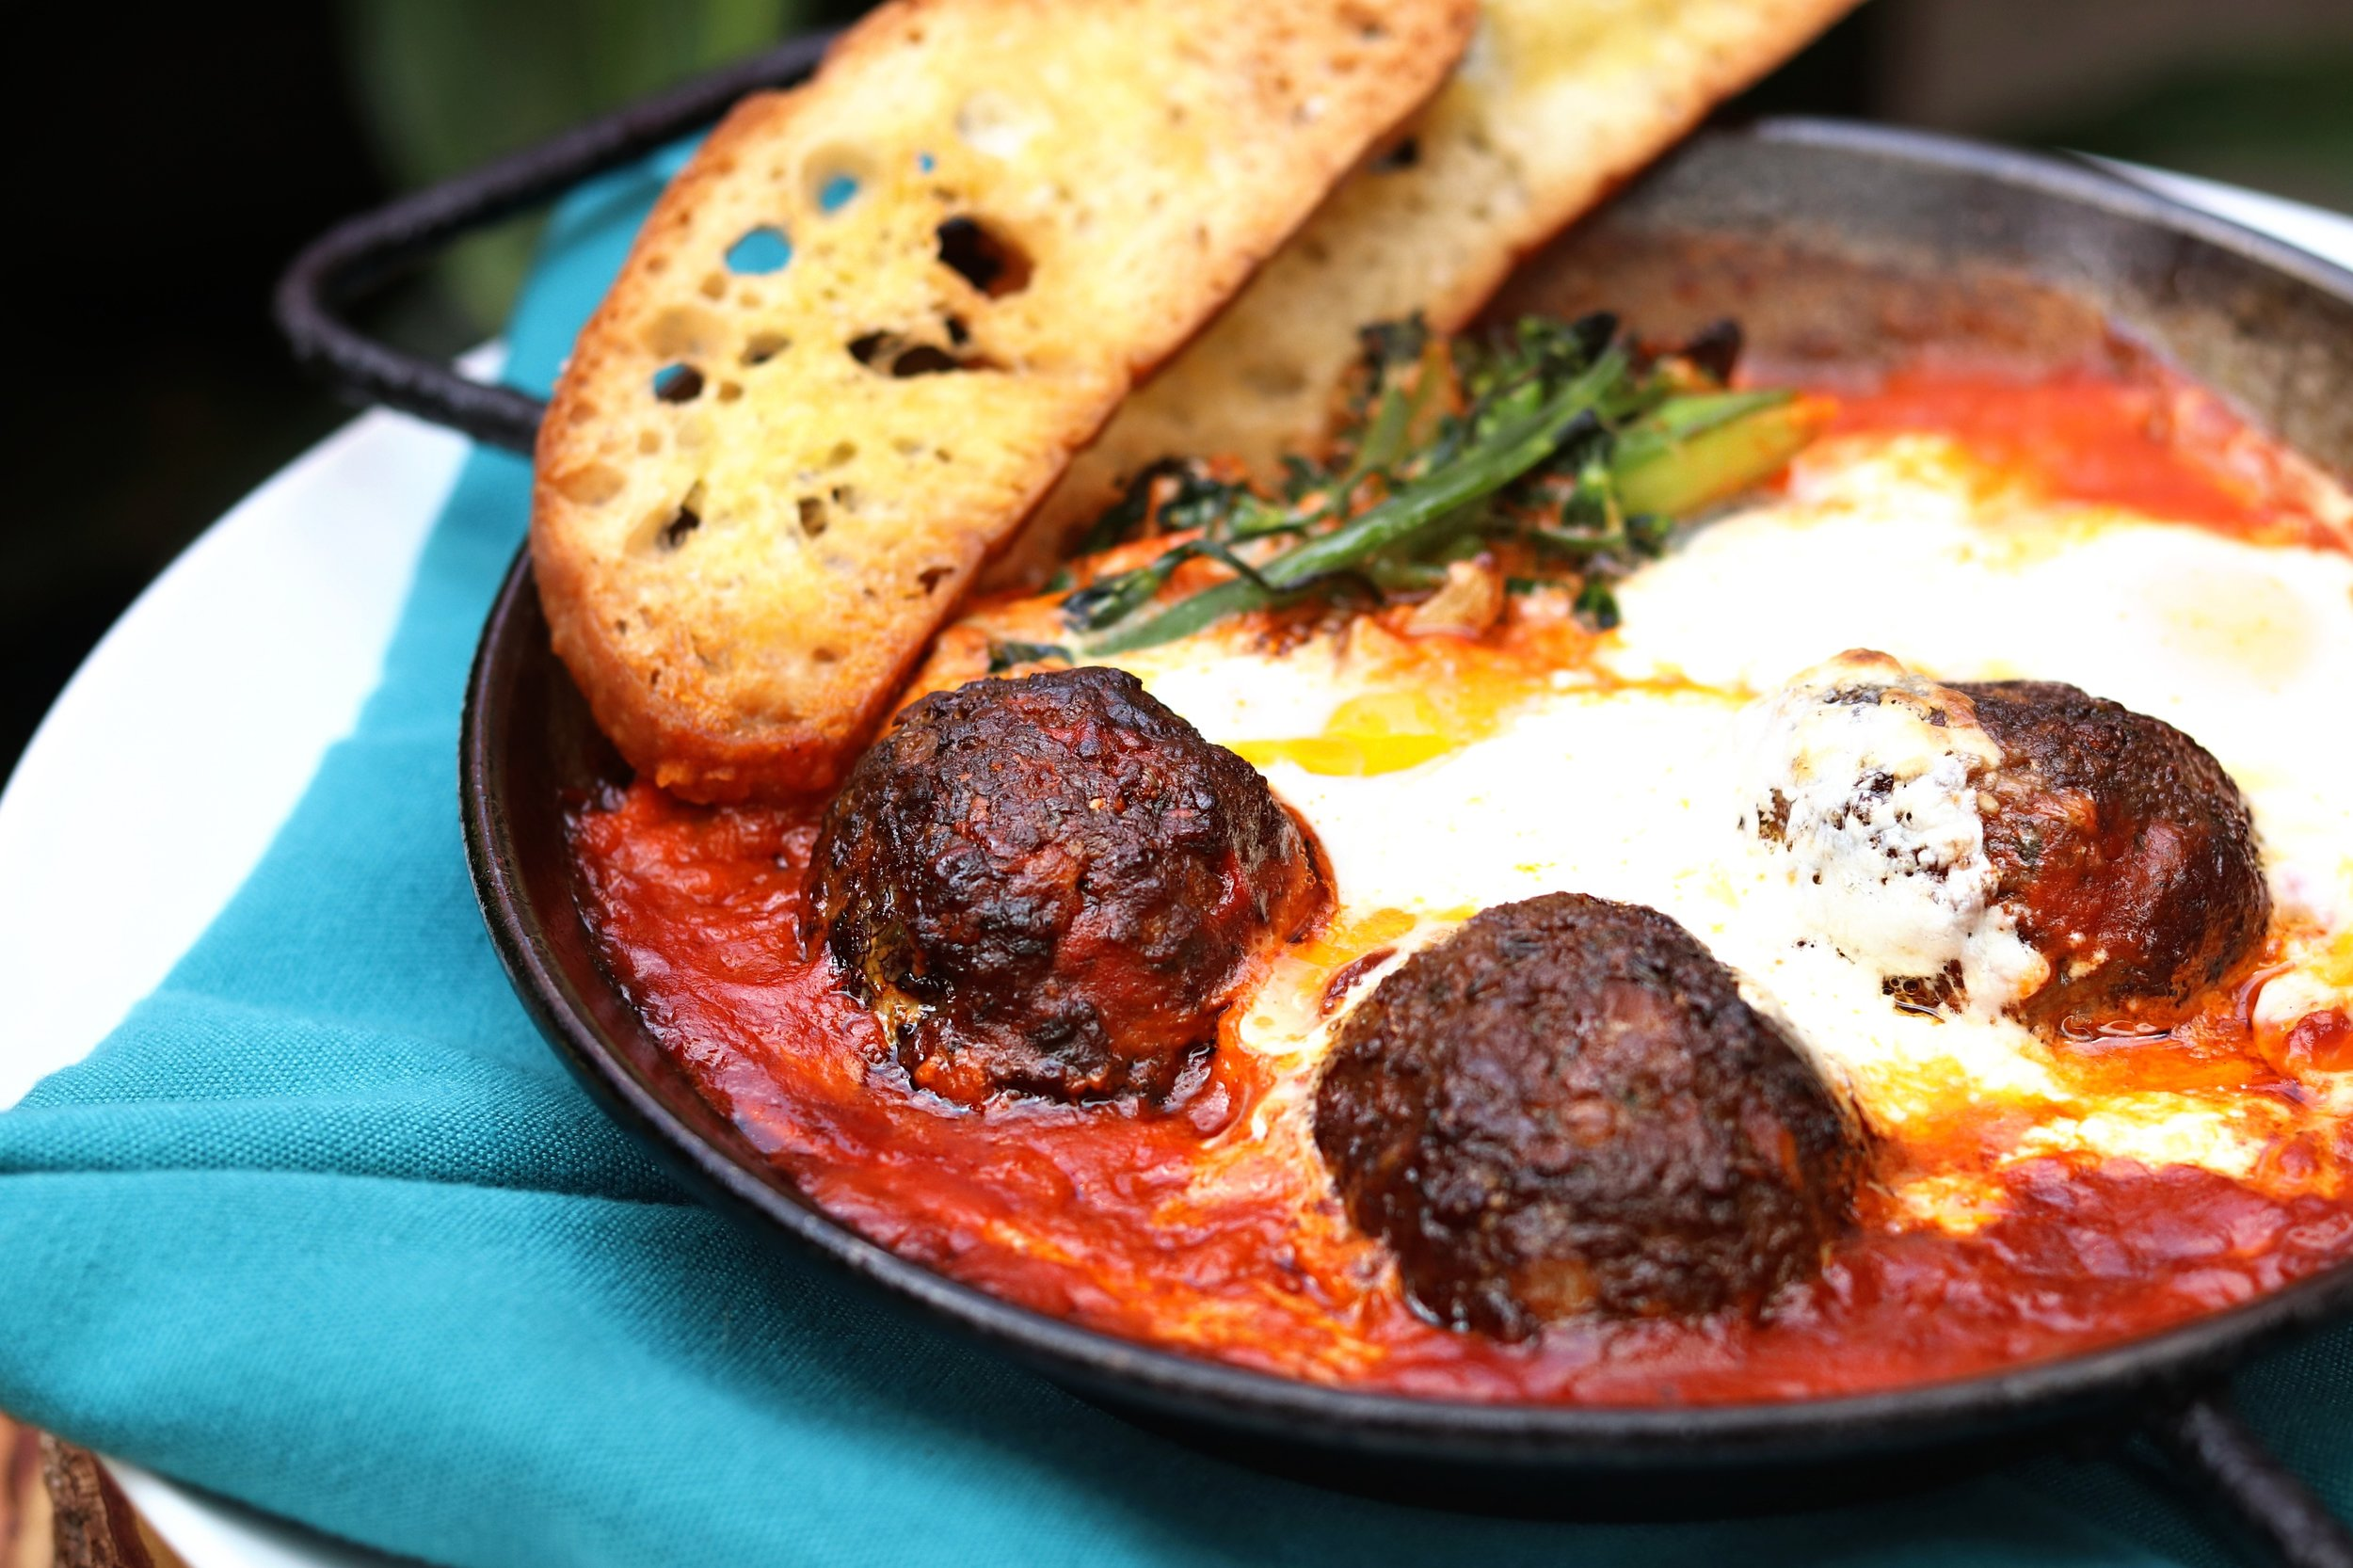 insideout lamb meatballs baked eggs brunch san diego hillcrest memorial day weekend brunchfaced bloody mary obsessed.jpg